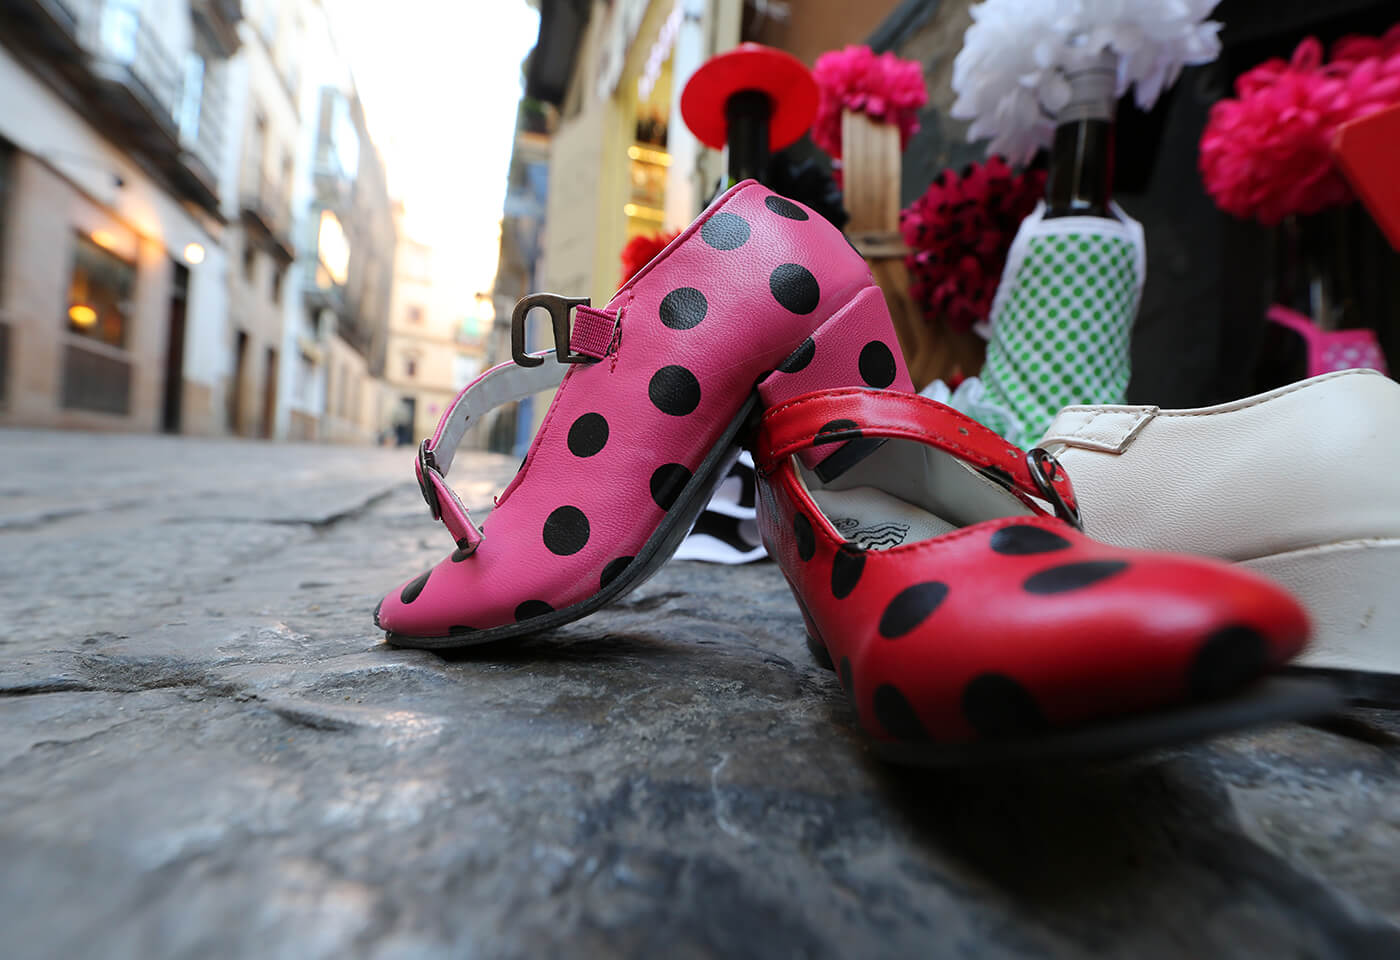 Pink and black polka dot shoes on street